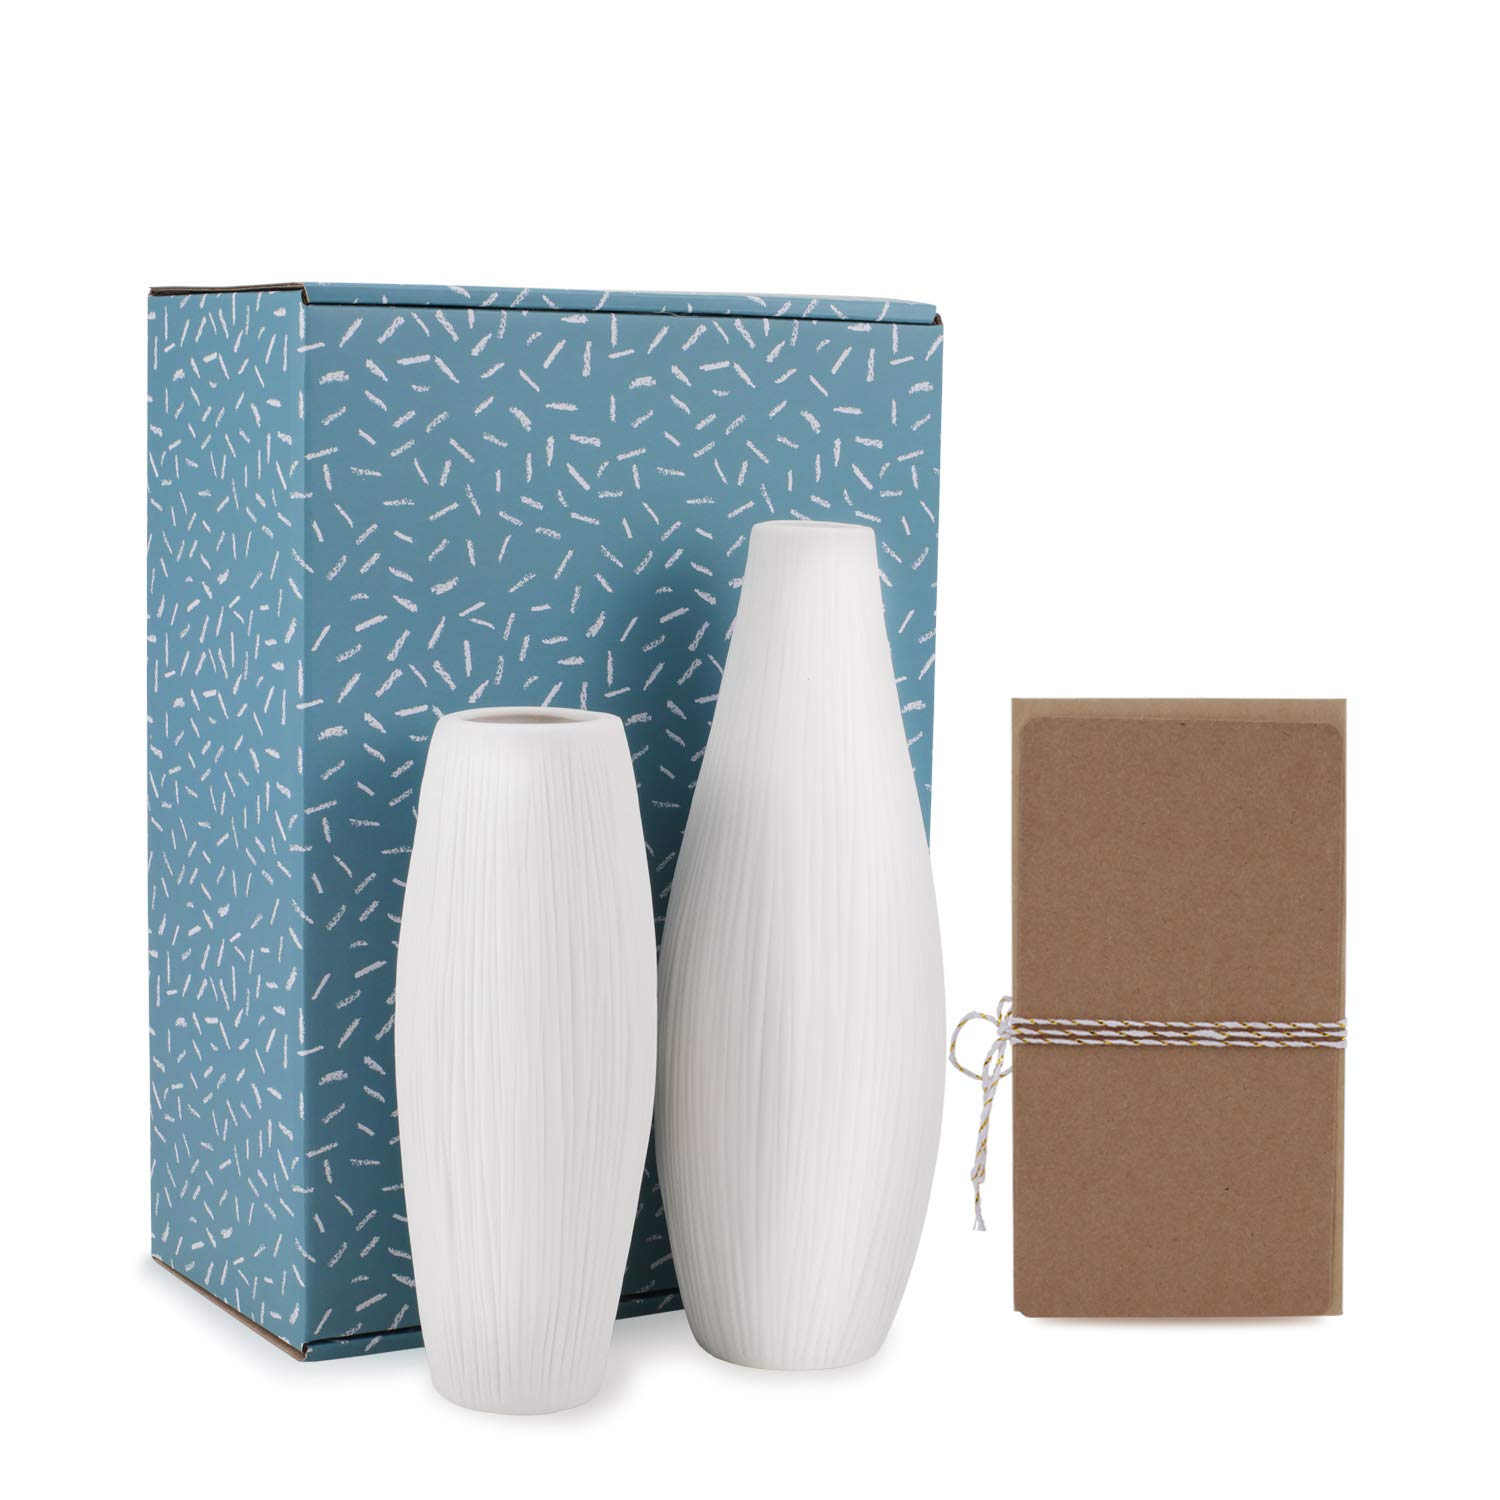 D'vine Dev White Ceramic Vases with Waterfall Textured Detailing - Unique Design - Home D¨¦cor Deramic Vases Set of 2 - Gift Box Packaged